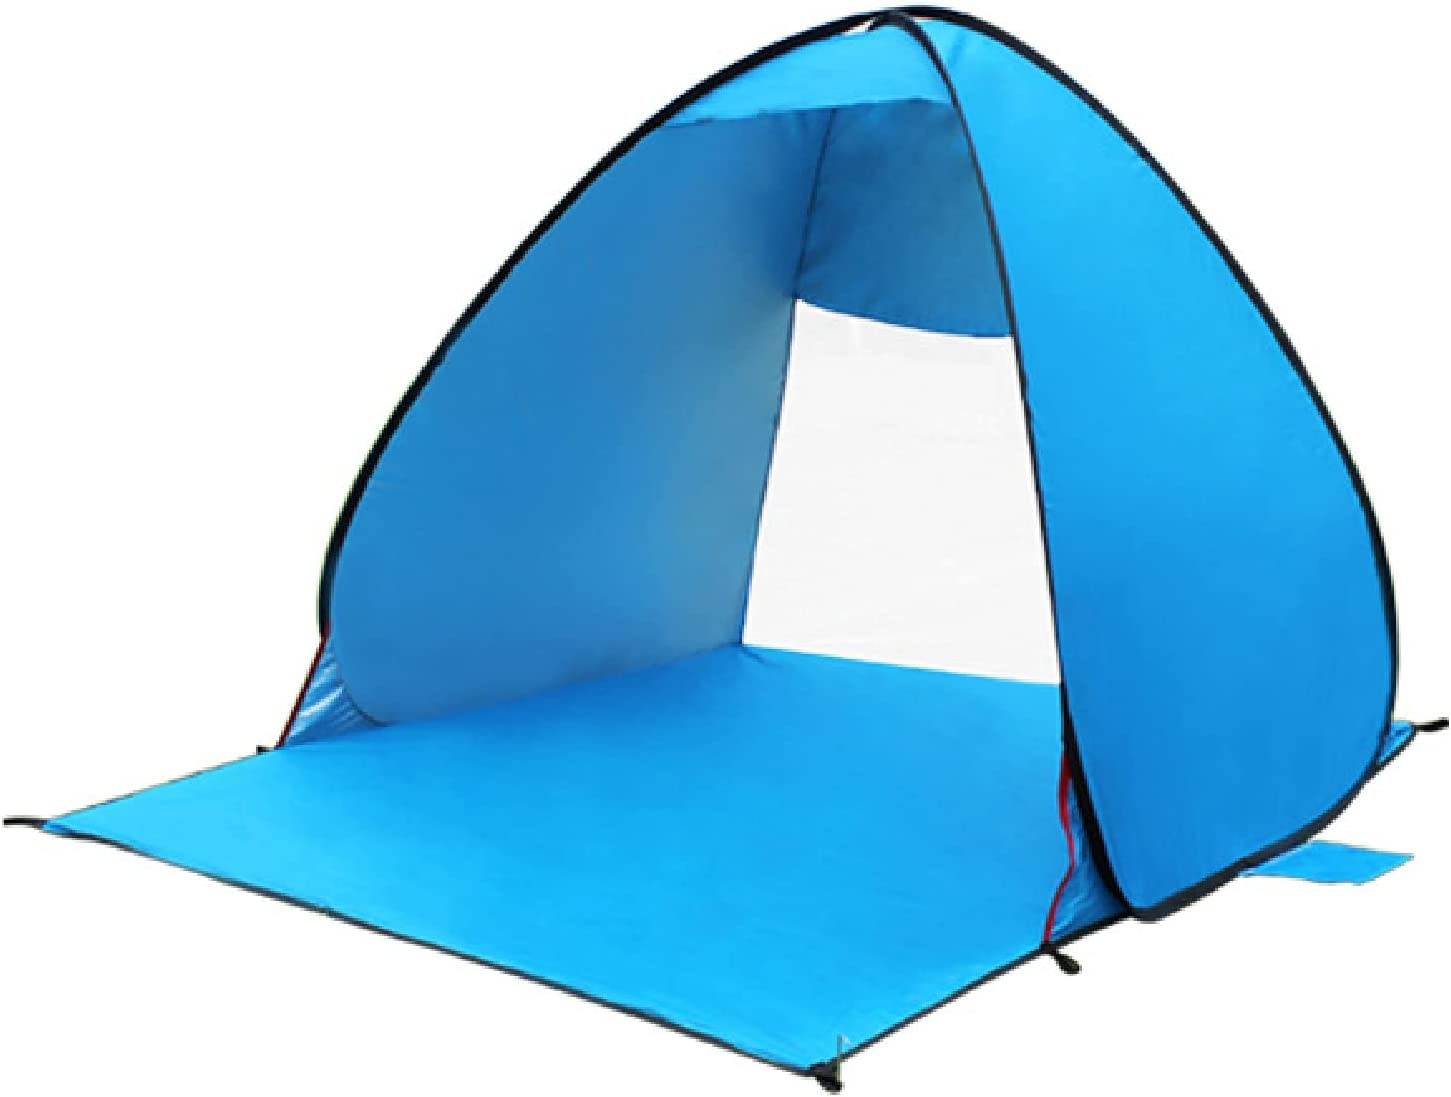 Camping Tent Foldable Multi-Function OFFicial site Breathable 5 ☆ popular Beac Cone-Shape